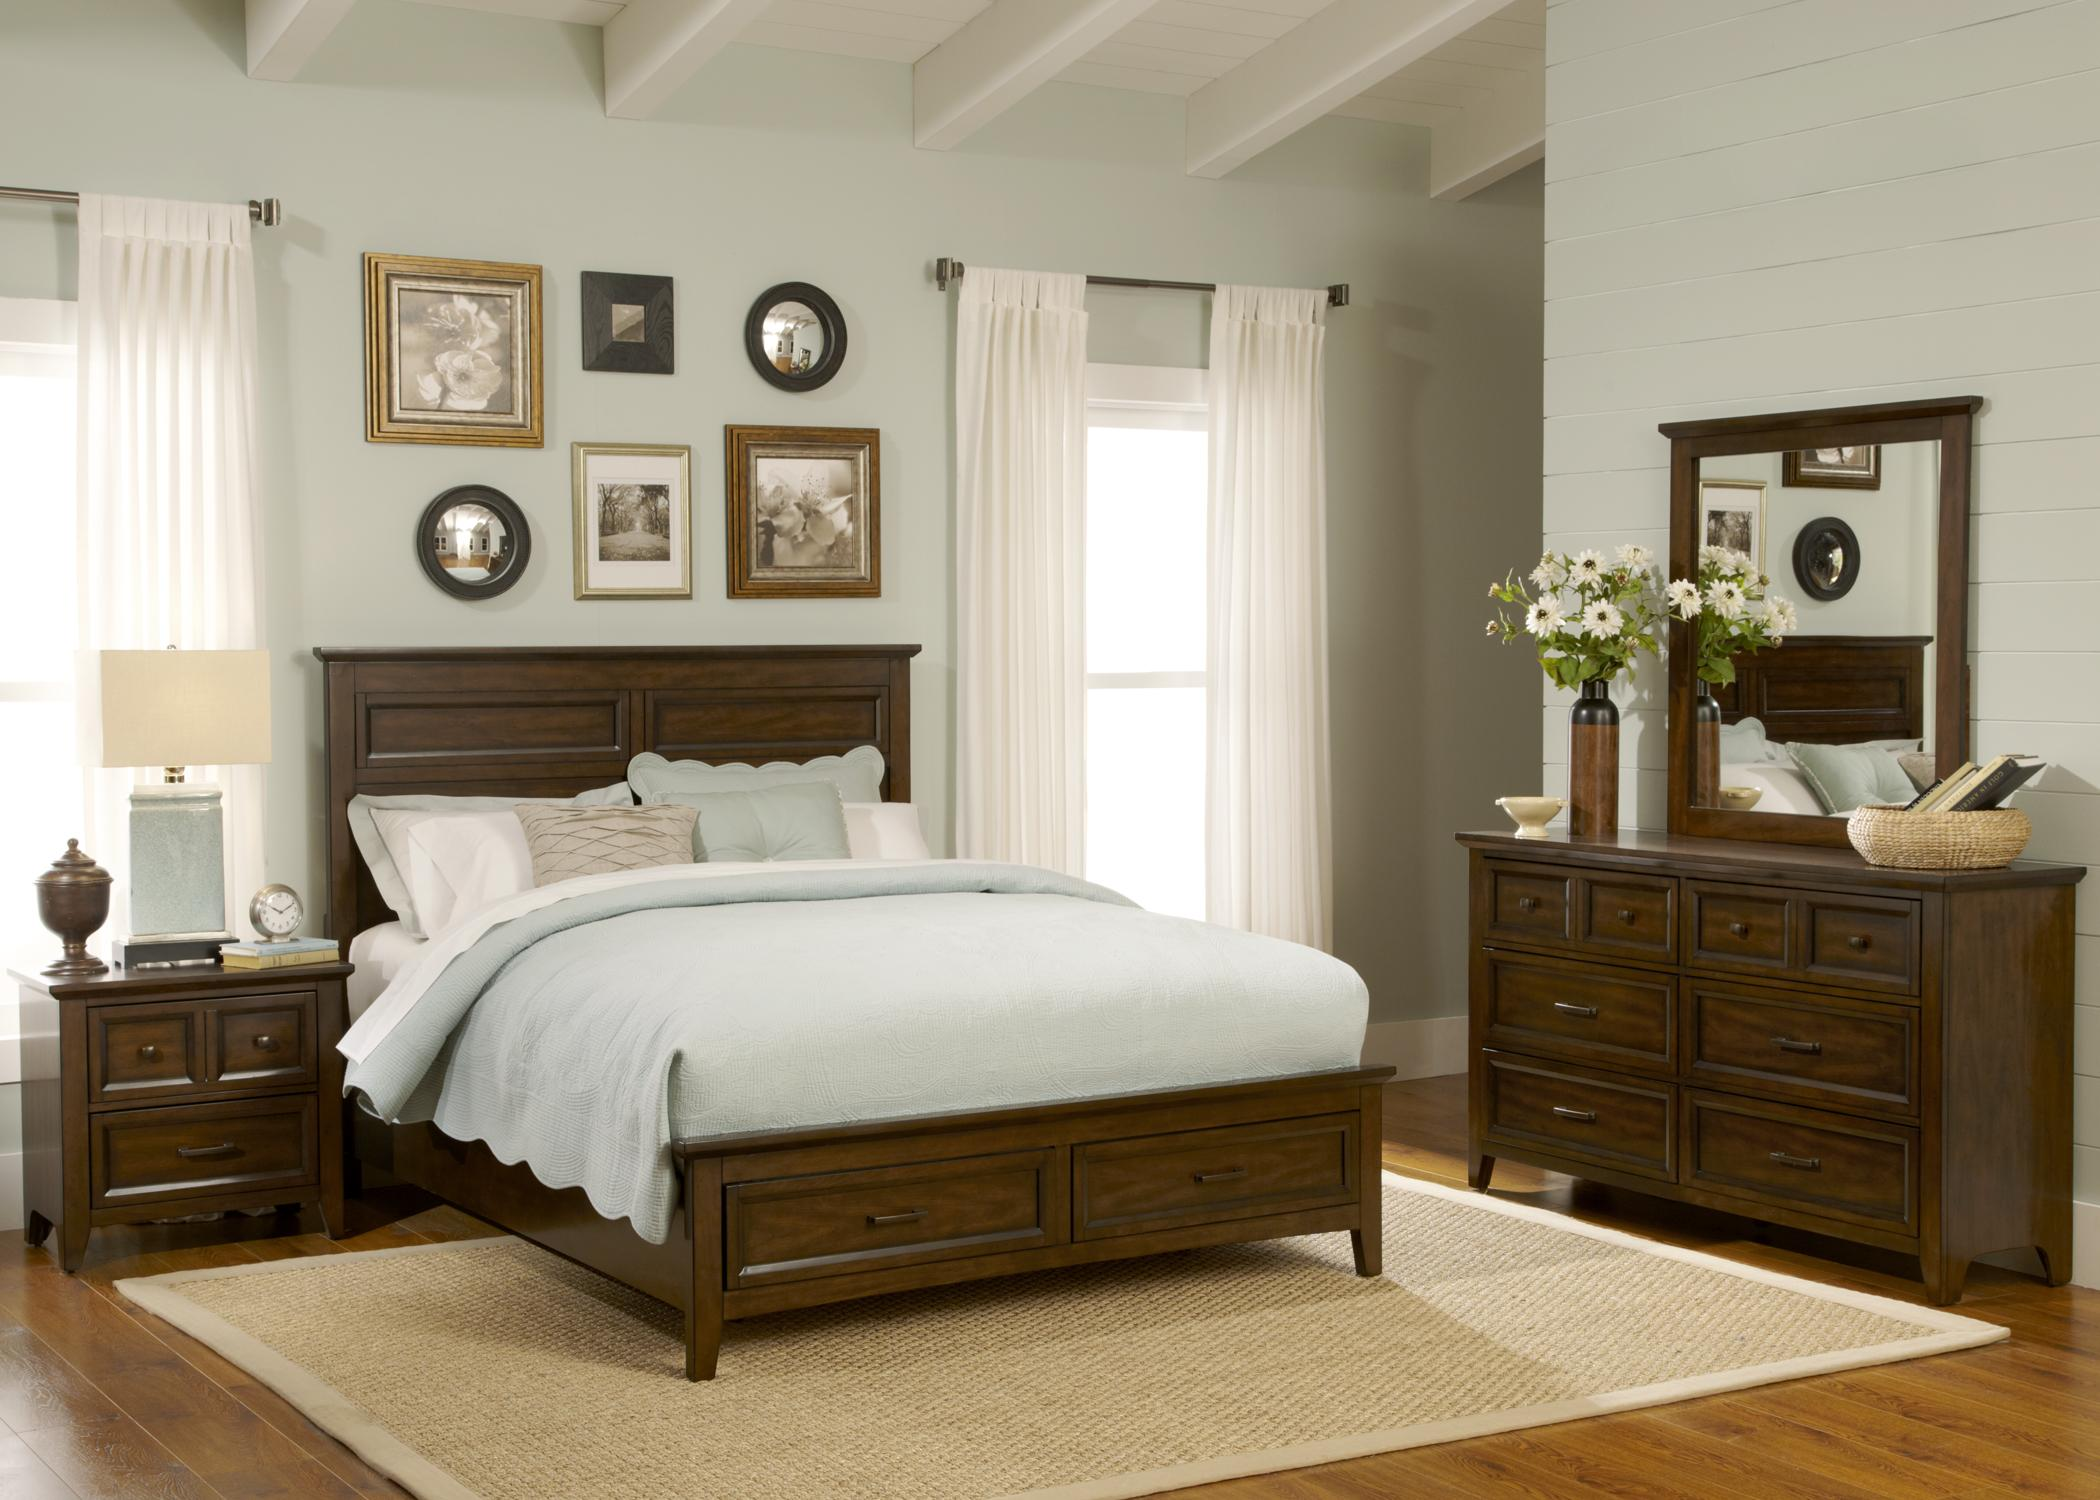 Liberty Furniture Laurel Creek Queen Bedroom Group 4 - Item Number: 461-BR-GP221